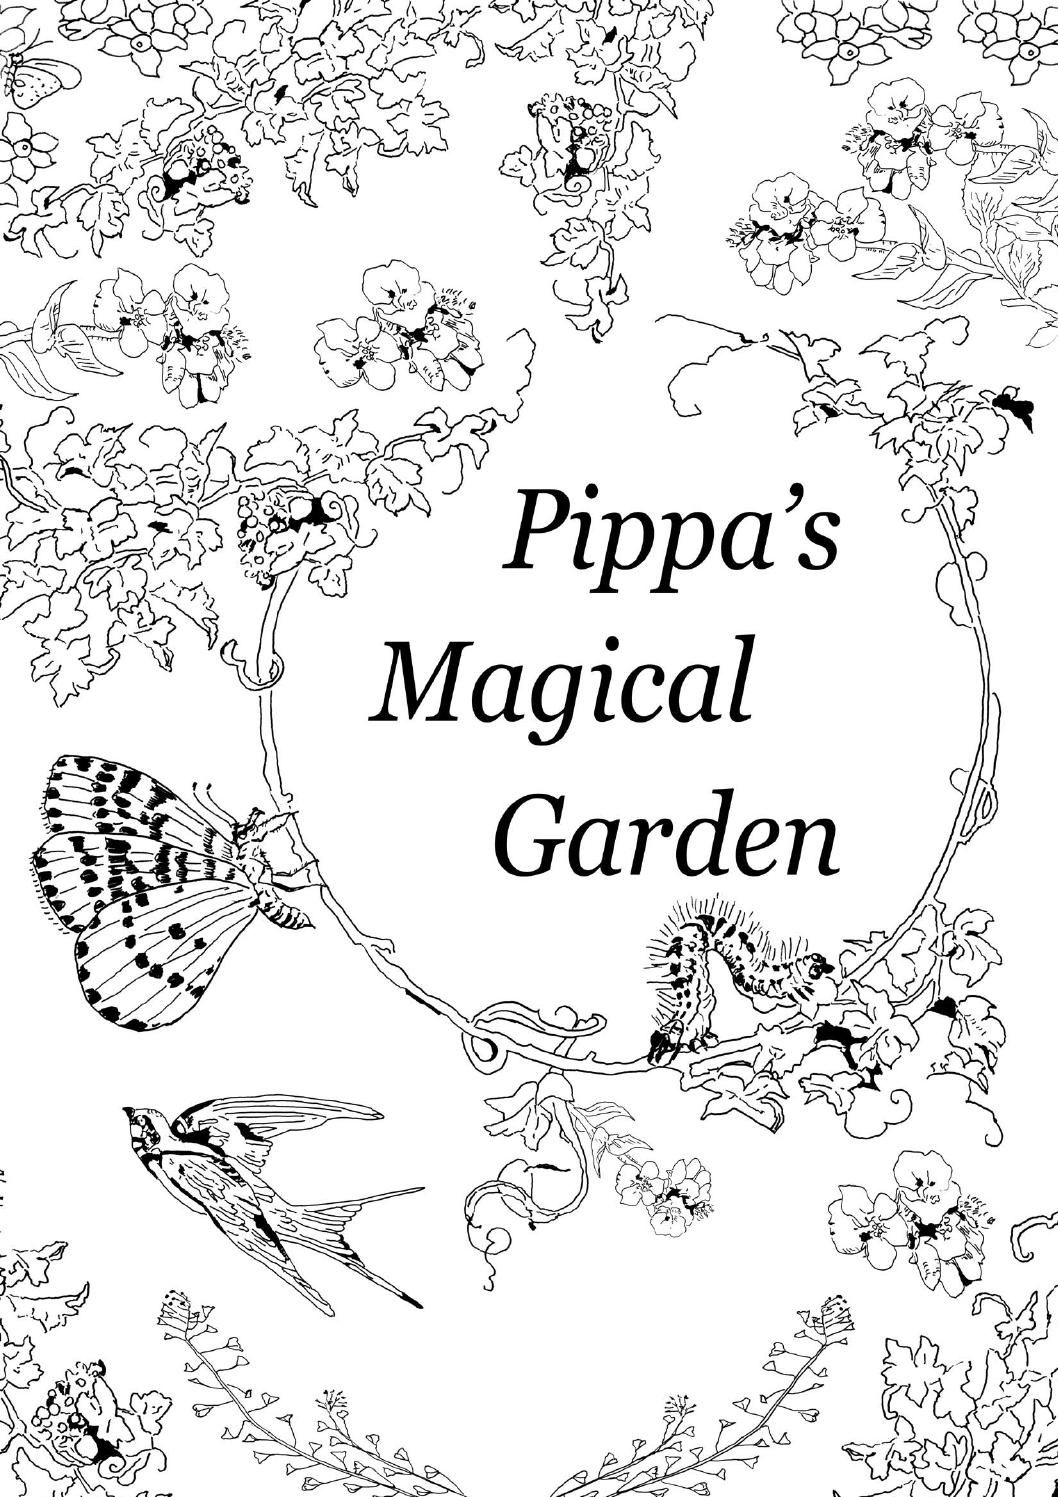 Pippaus magical garden coloring books and doodles